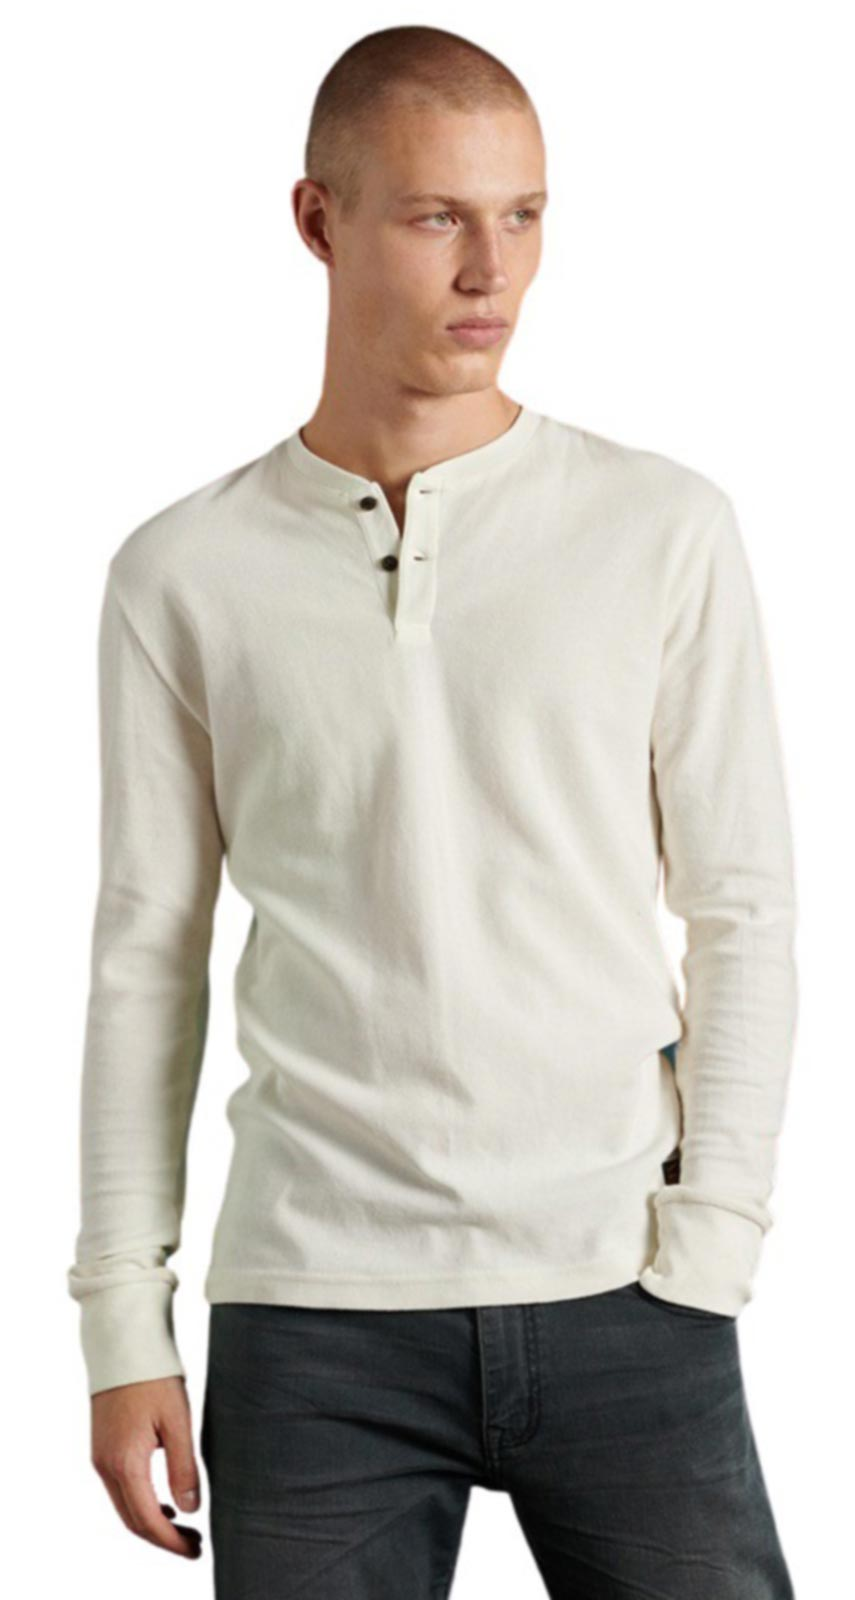 Superdry Micro Texture Henley Top Cream